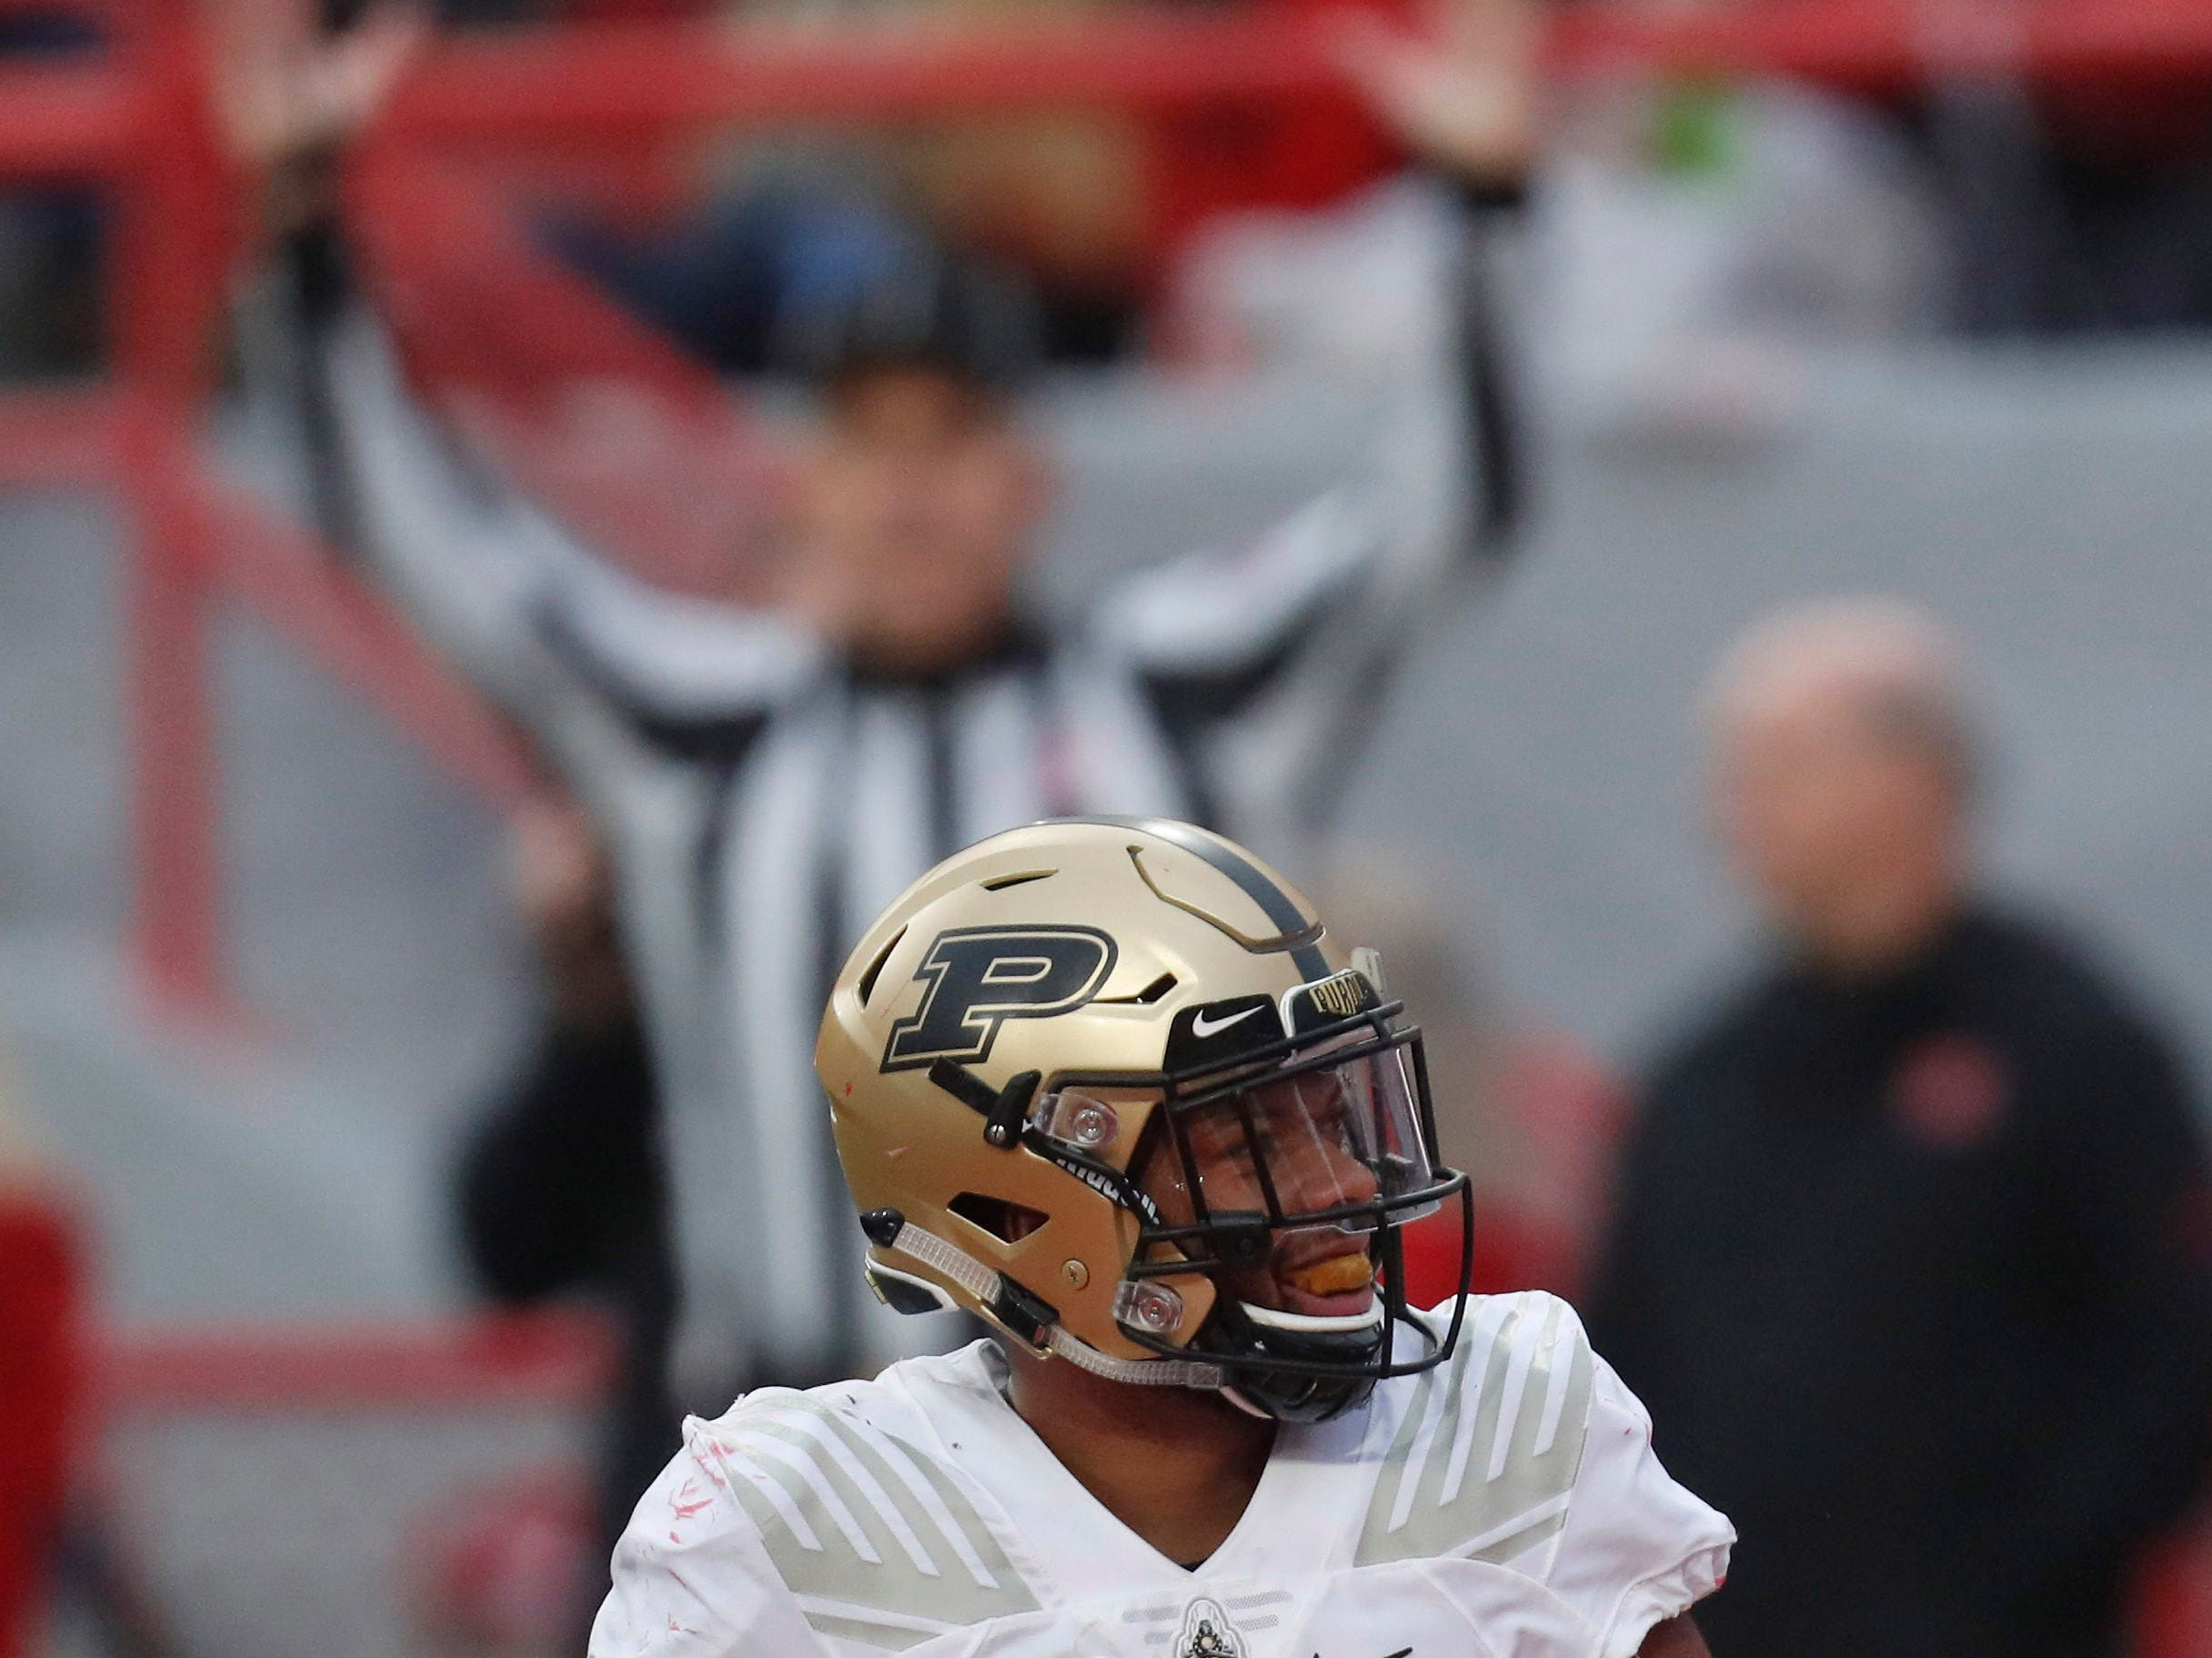 In the huddle with Purdue running back Markell Jones | Flying around